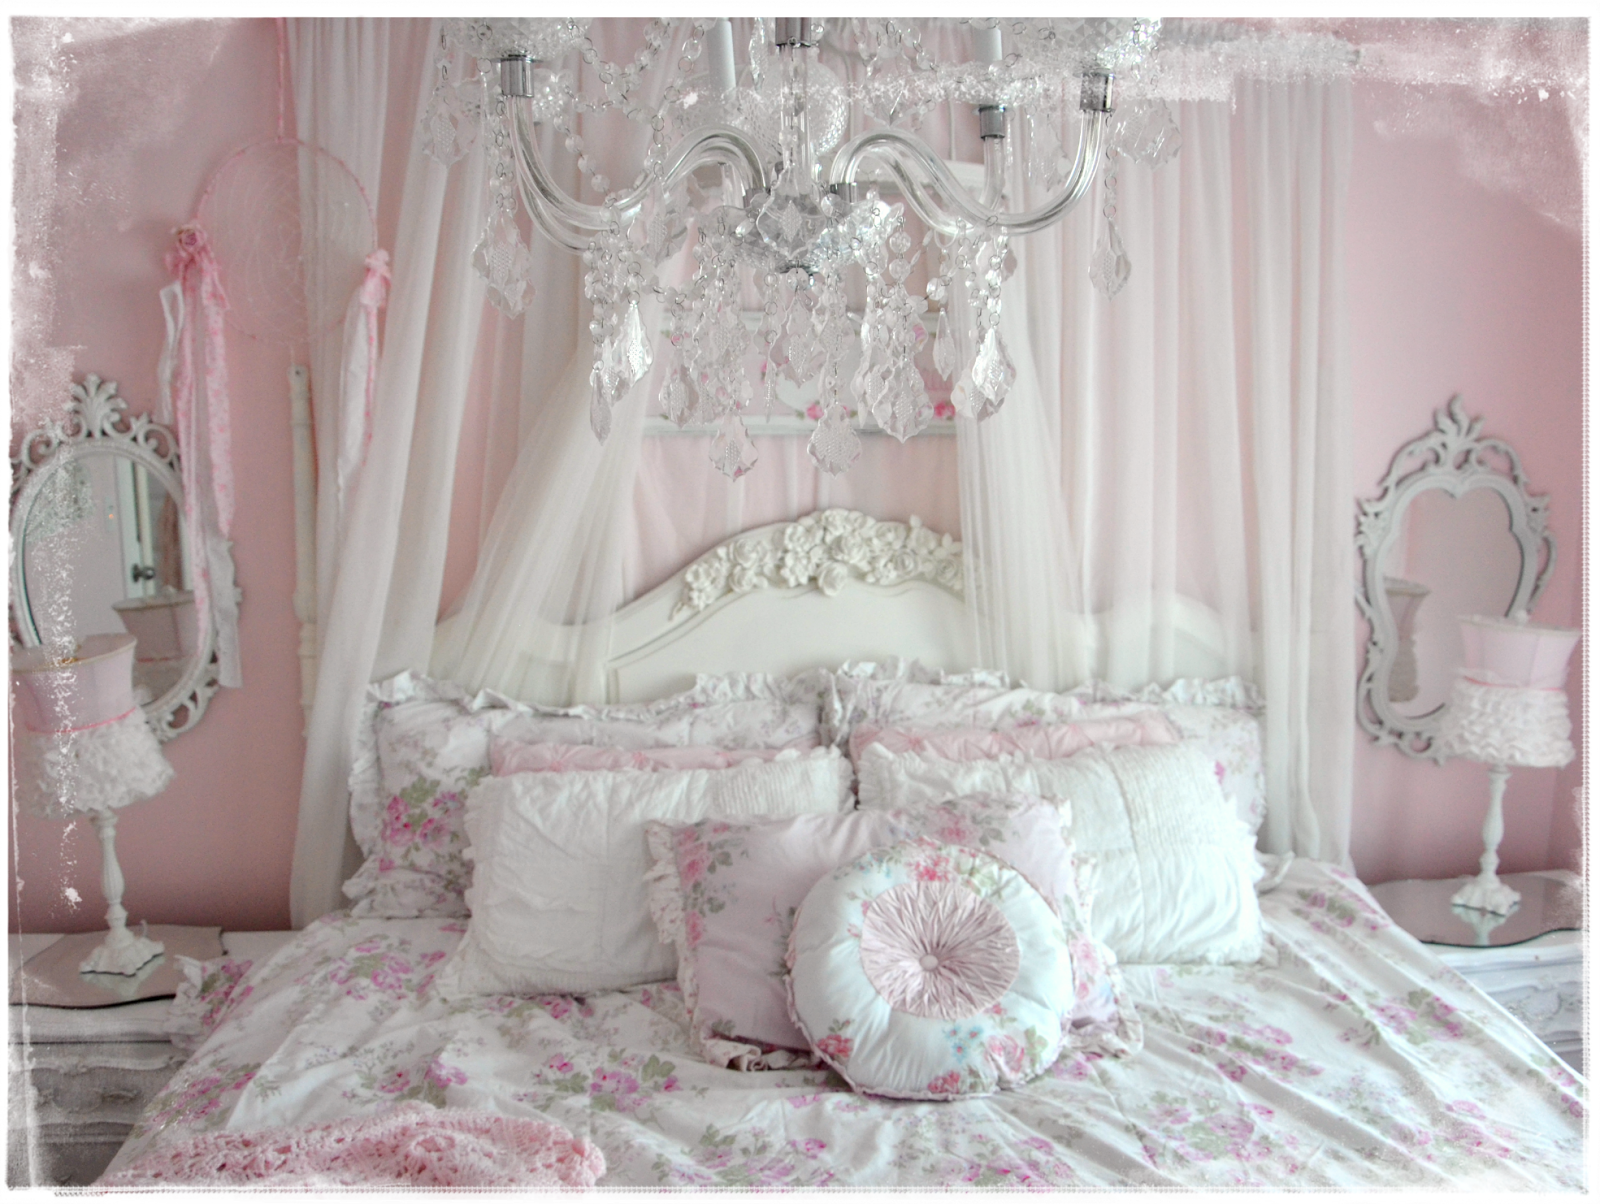 images of shabby chic decor decorating tiny bedroom. Black Bedroom Furniture Sets. Home Design Ideas